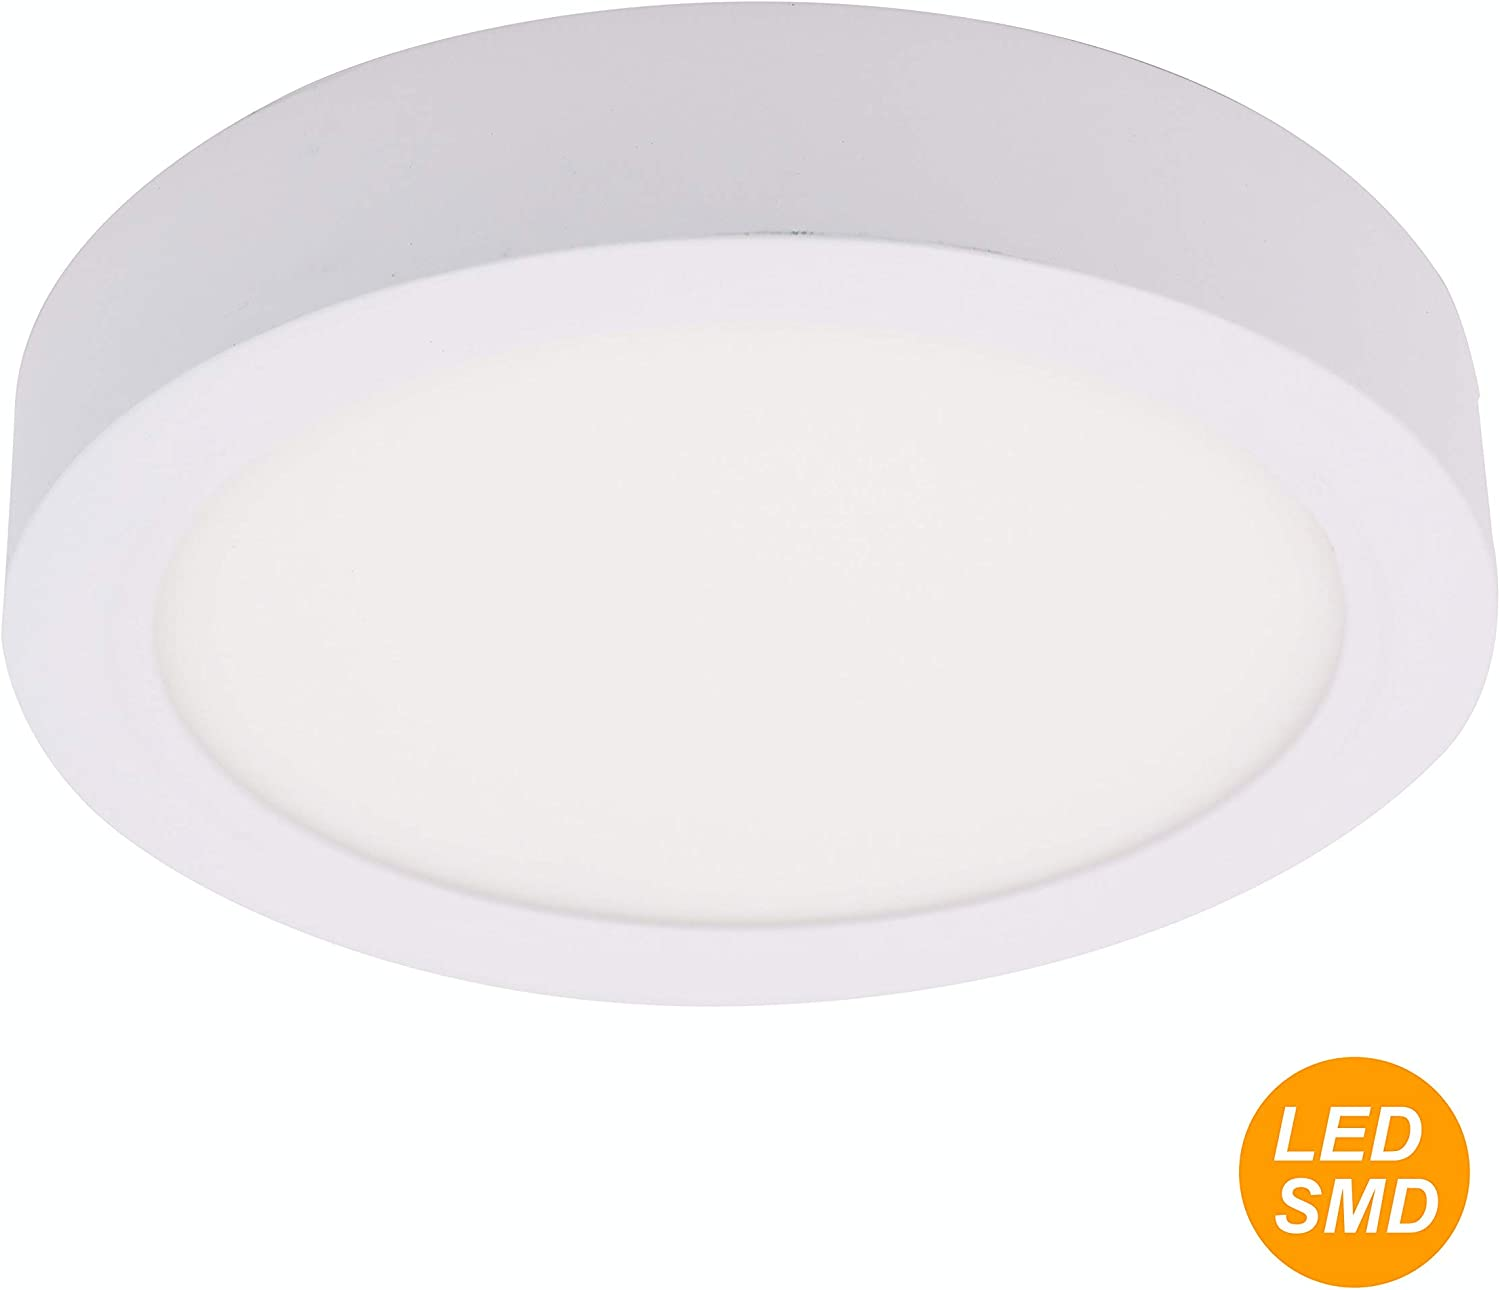 SECEIEL ® Plafón LED 18W 1450Lm 4200K Downlight LED redondo (disponible en varios colores), aluminio, 18W,luz neutra [Clase de eficiencia energética A+]